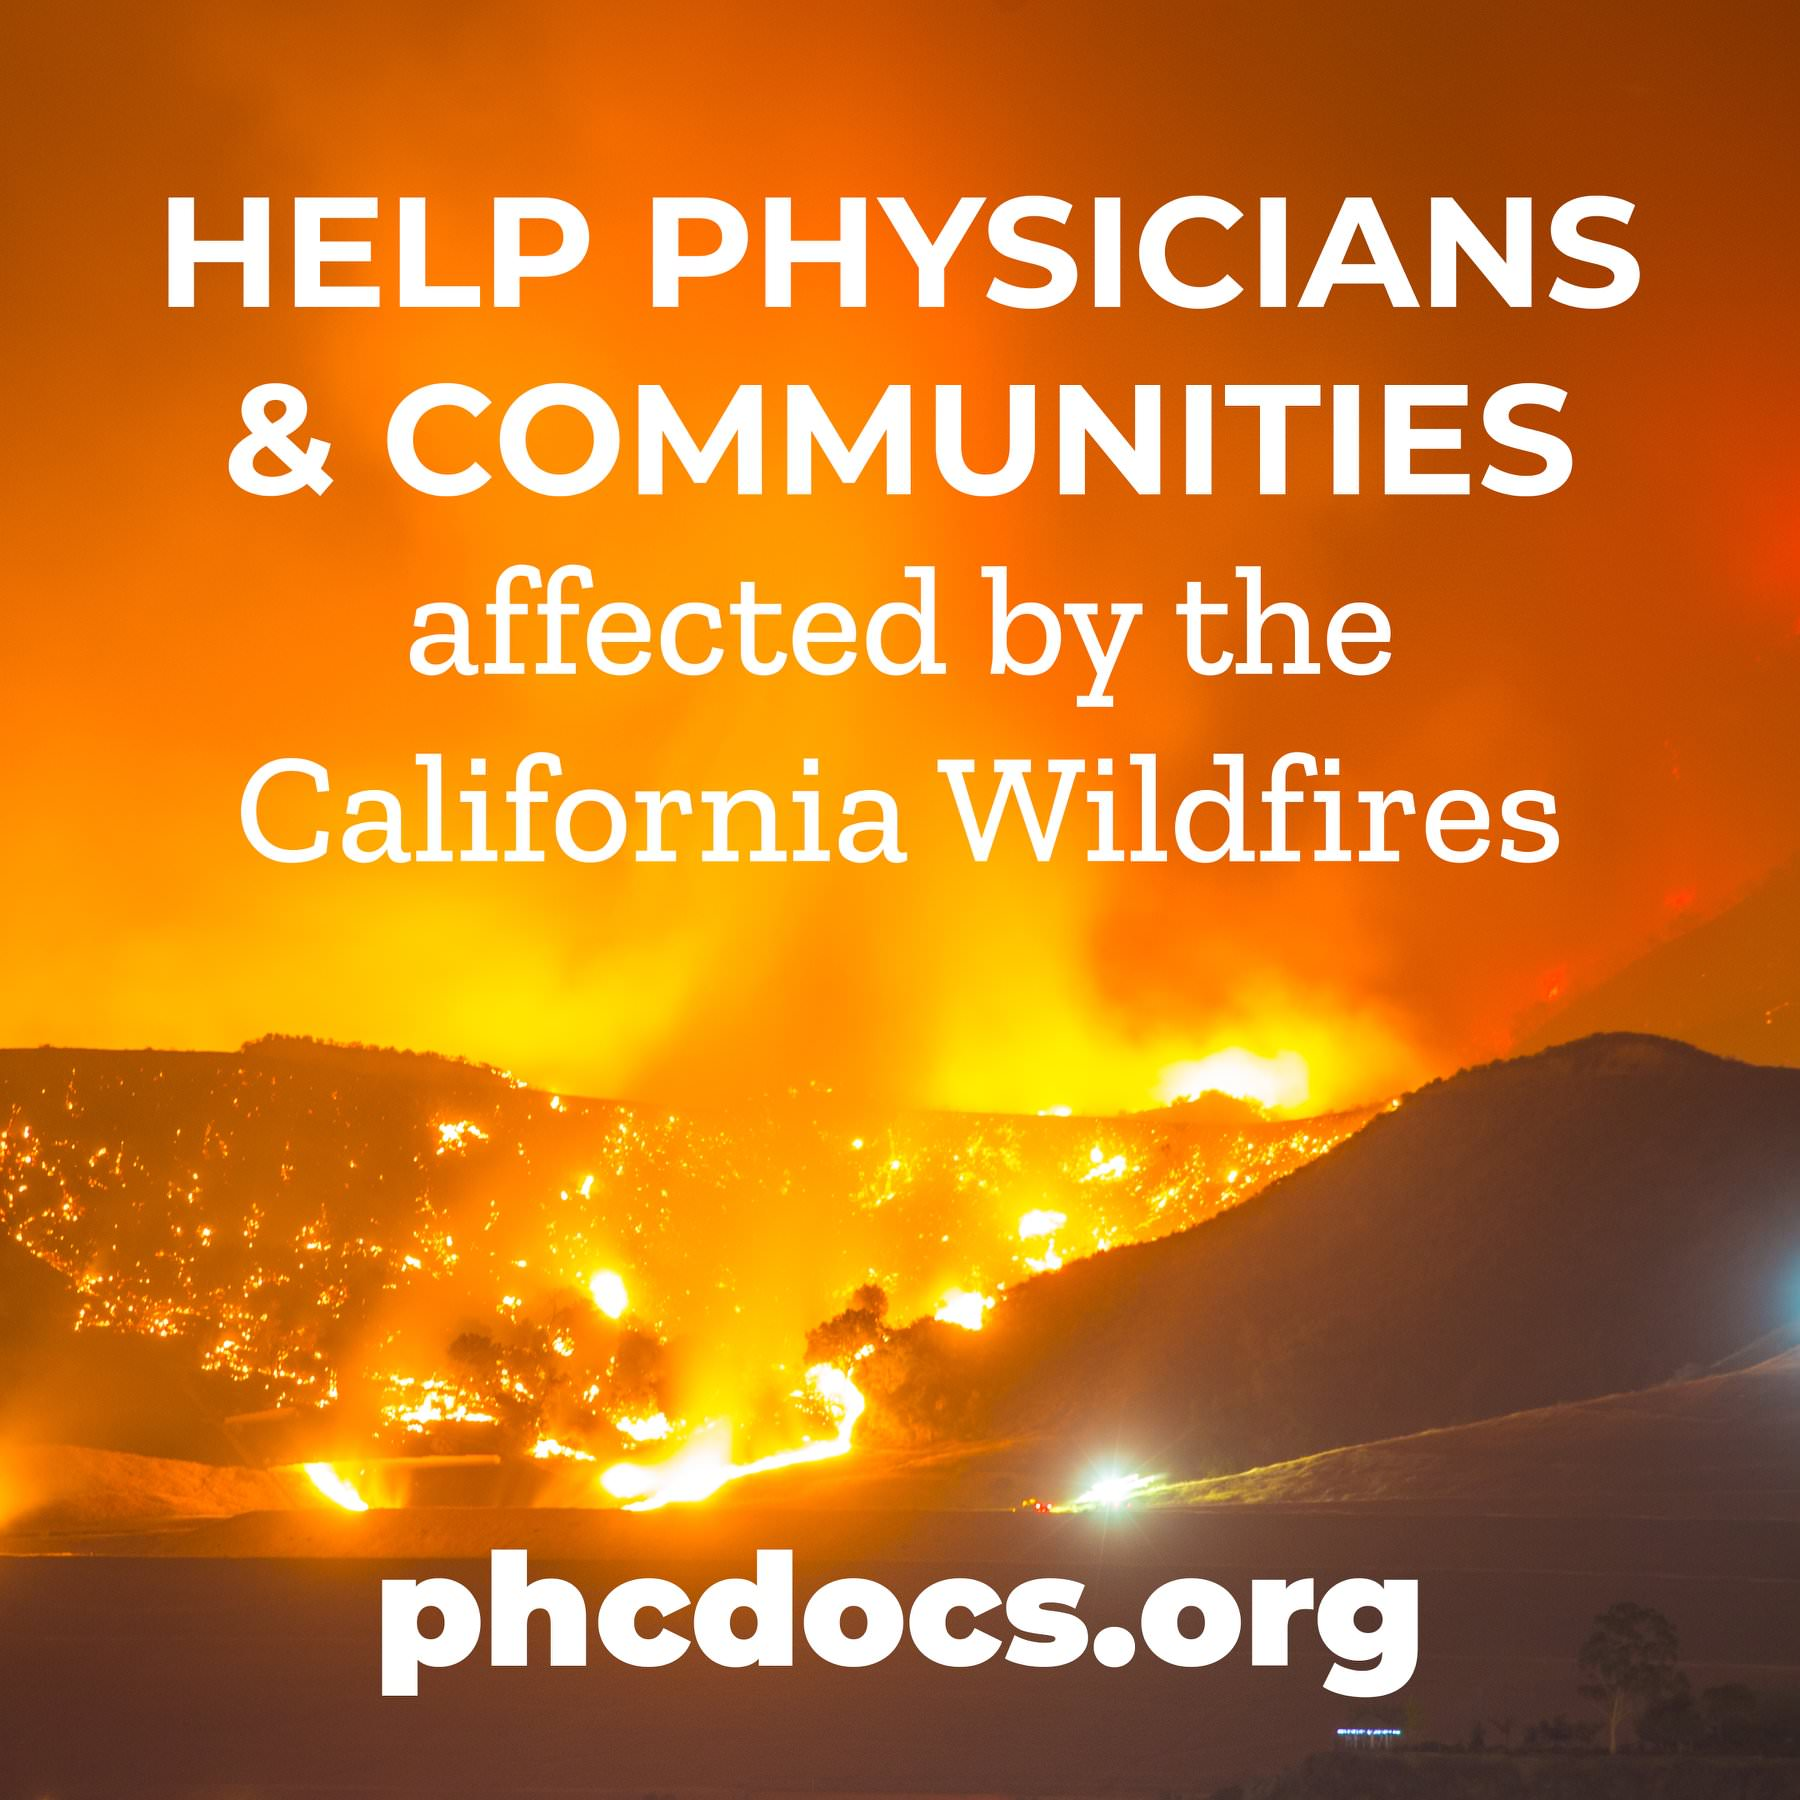 CMA and PHC Launch Wildfire Relief Campaign to Support Impacted Physicians